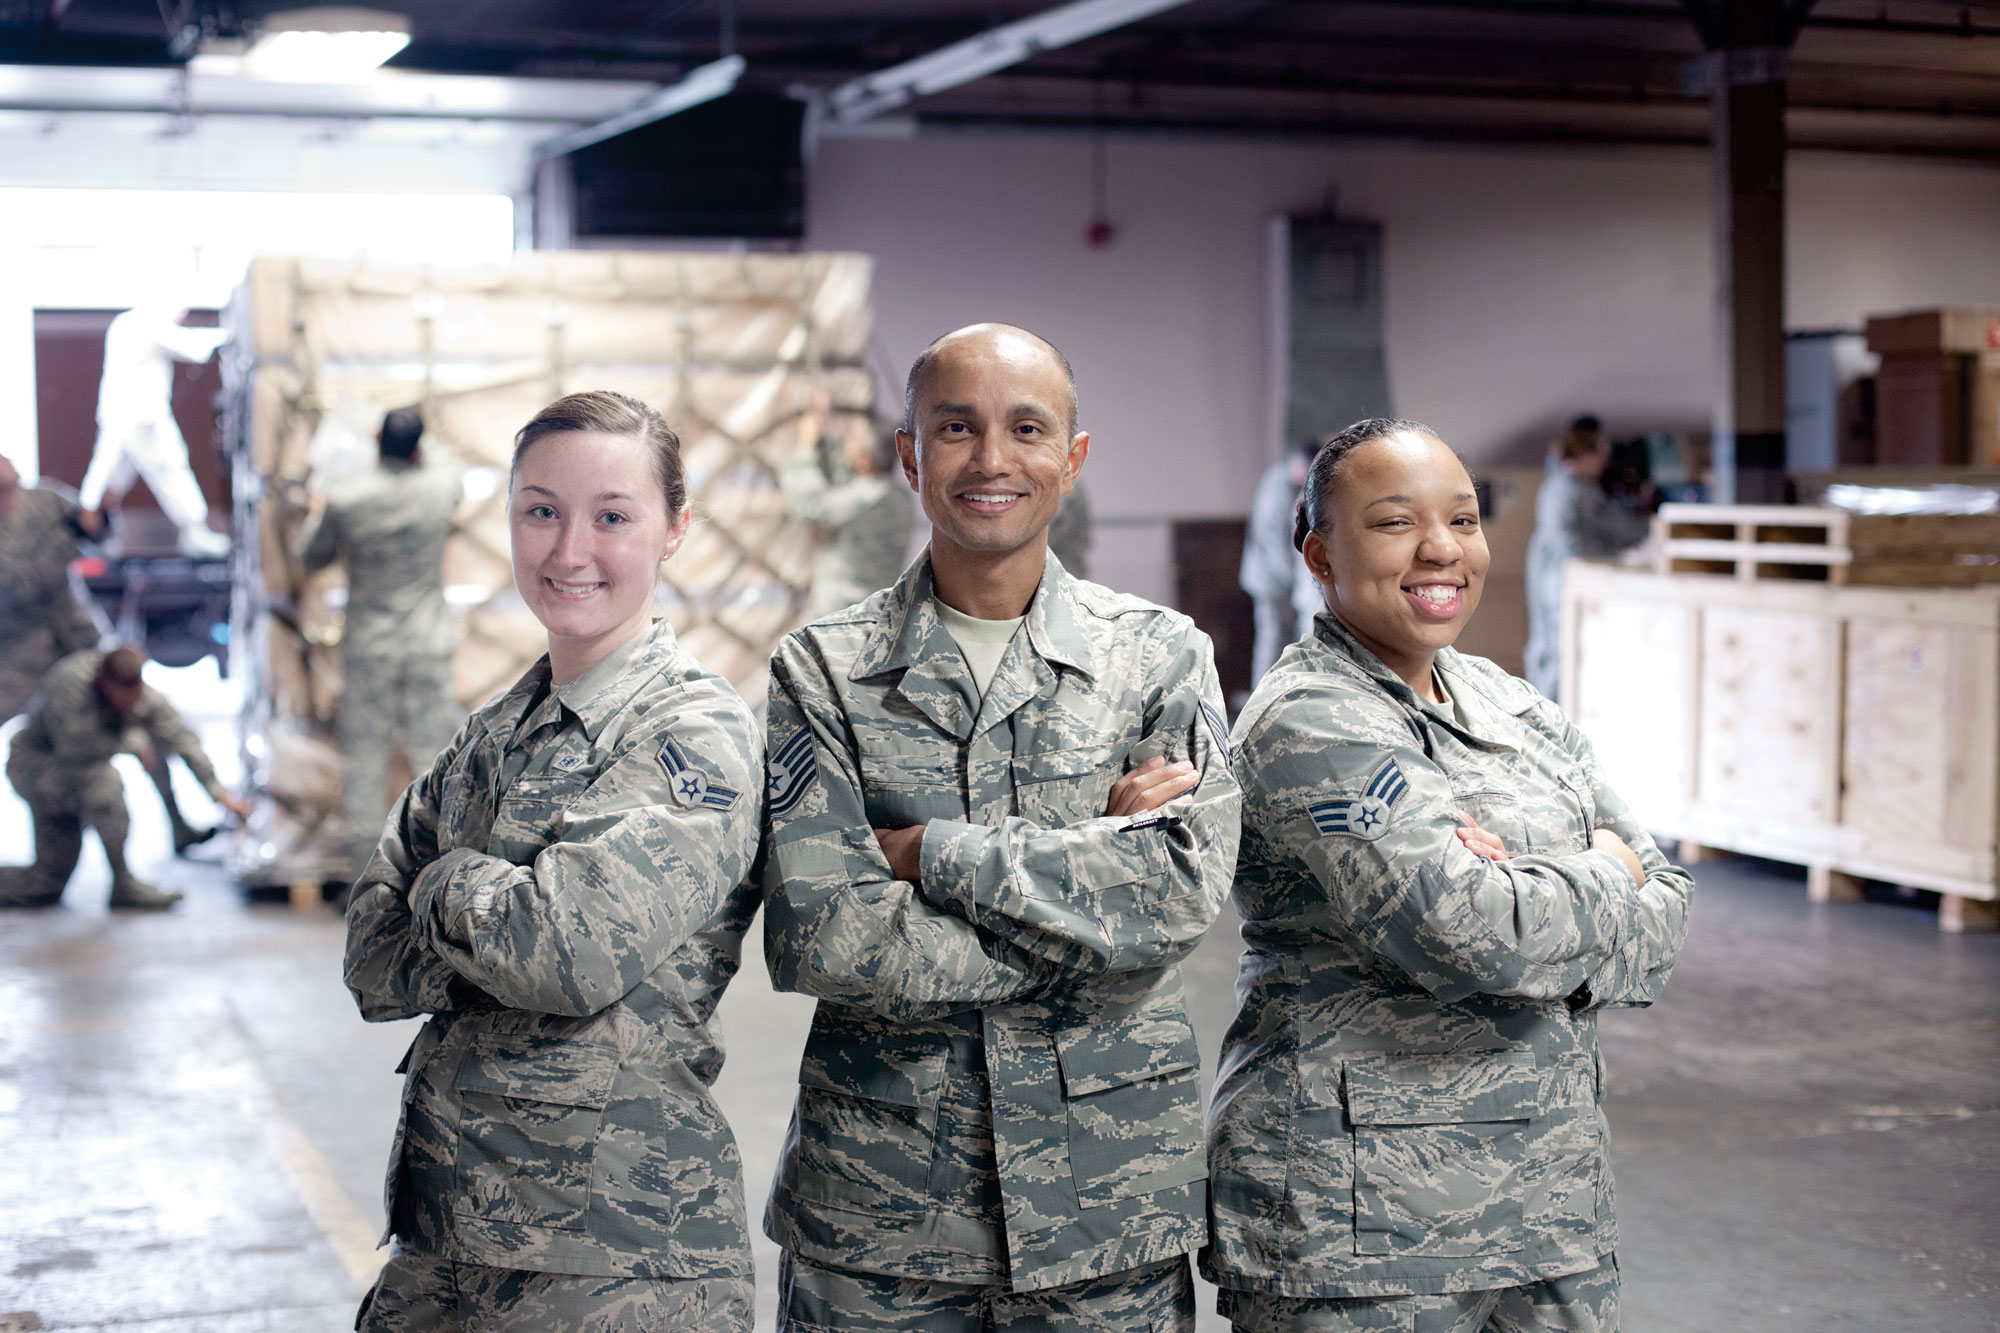 Three members of the Air Force standing together in uniform, smiling.